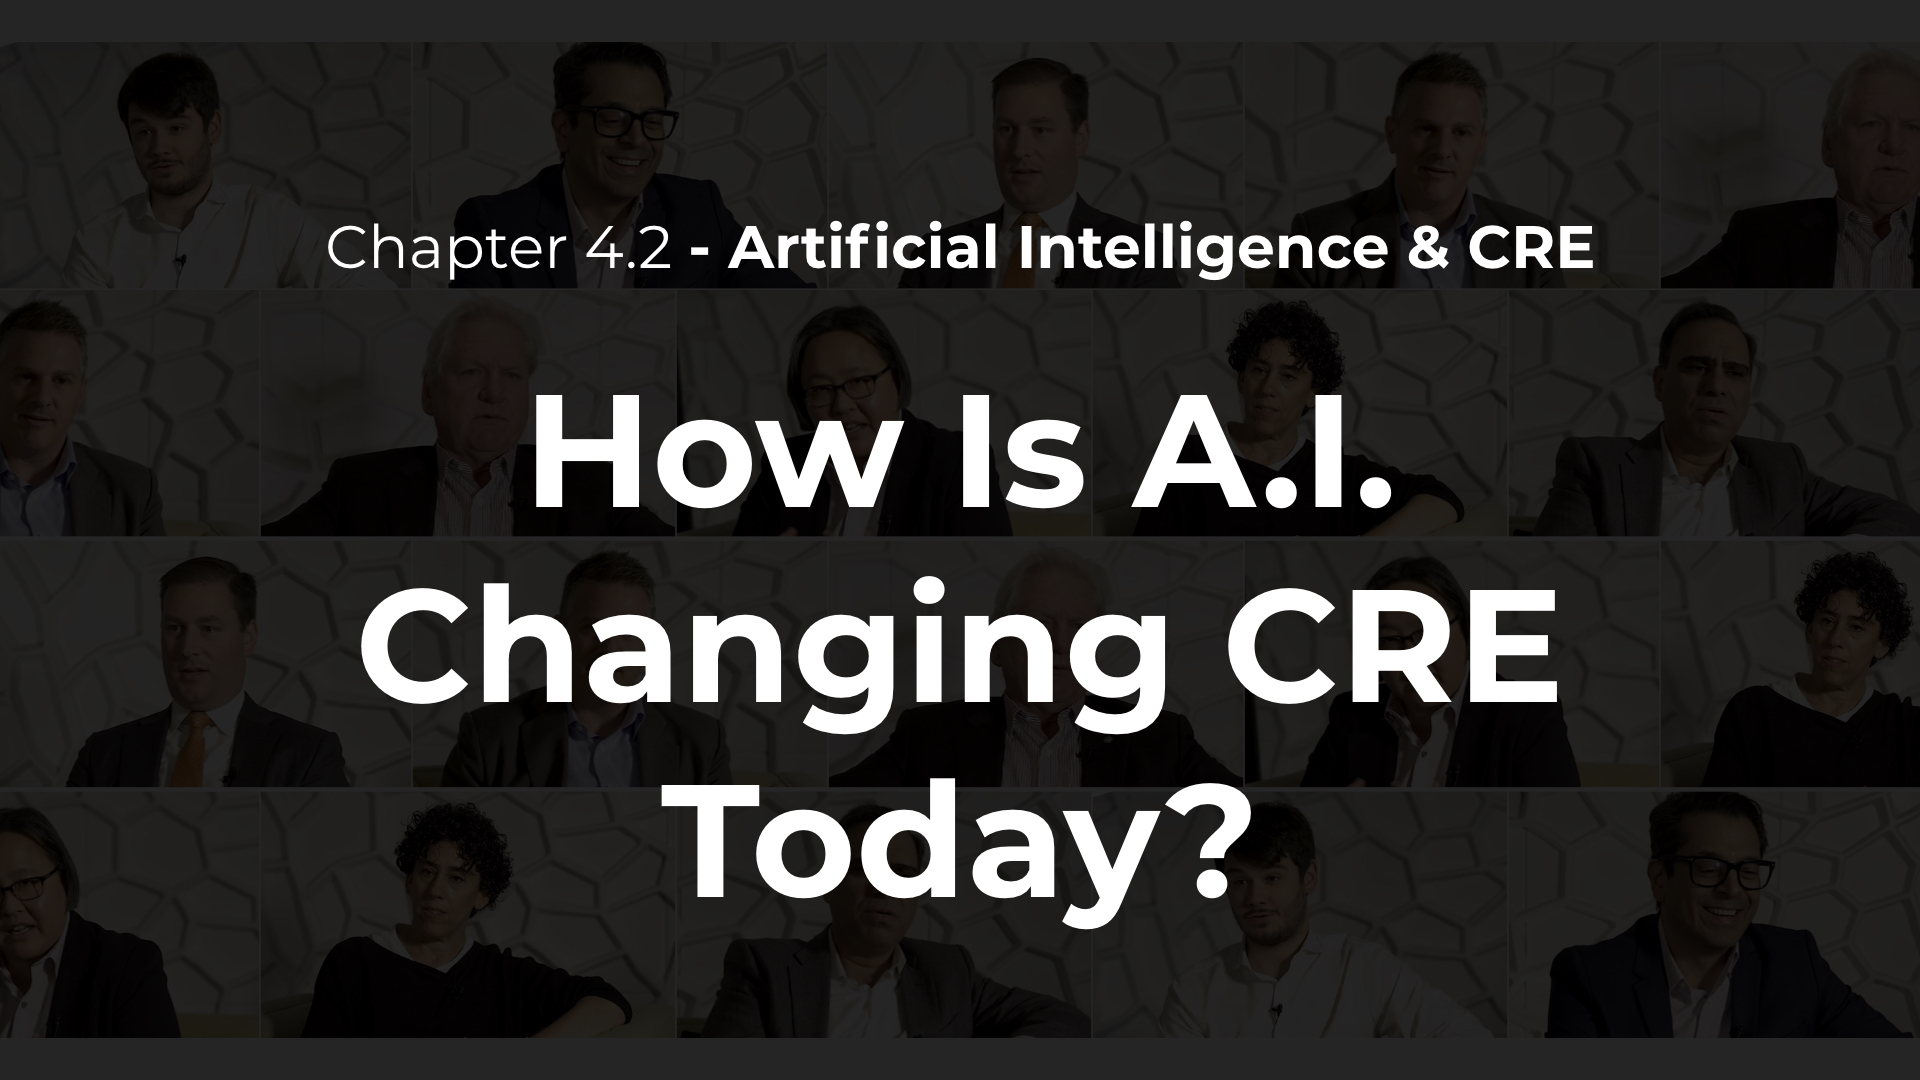 4.2 - How Is AI Changing CRE Today?